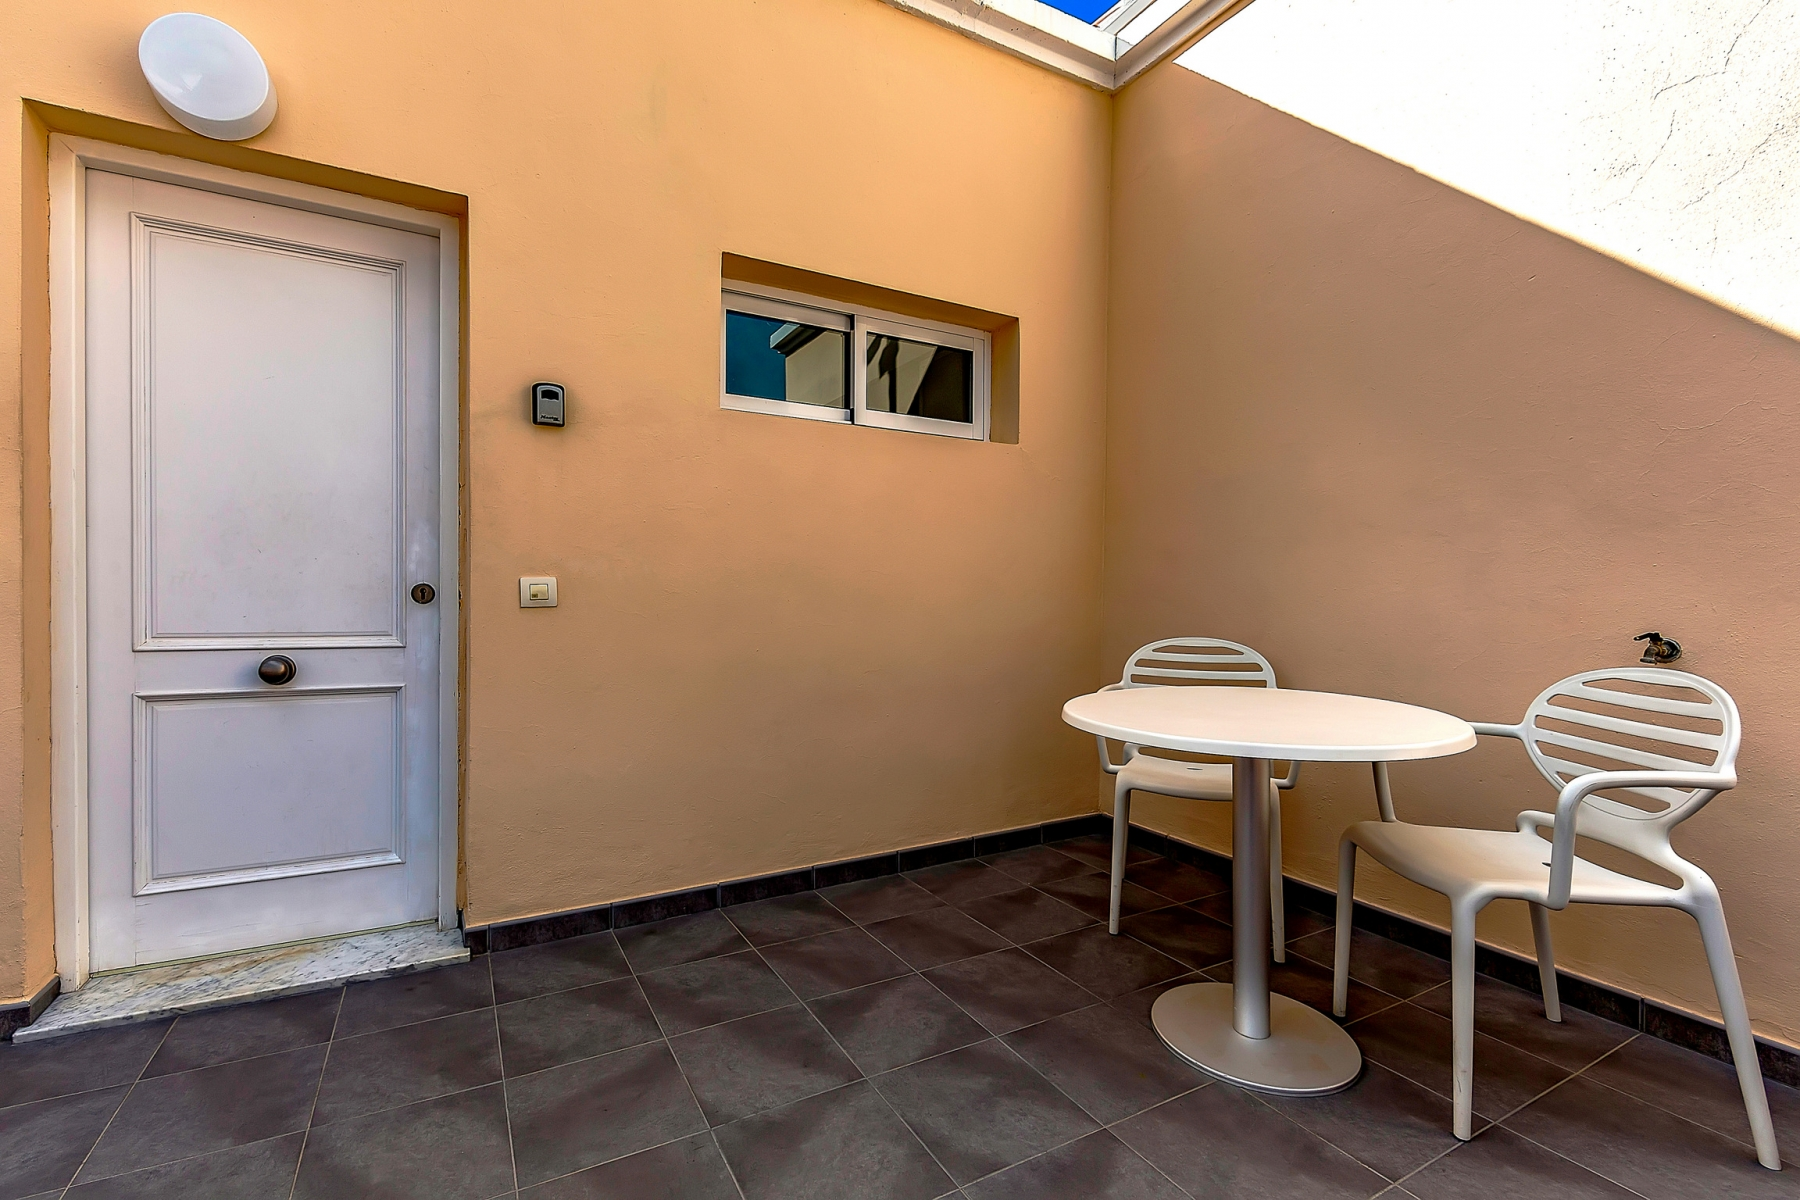 Properties for Sale in Tenerife, Canary Islands, Spain | SylkWayStar Real Estate. 1 bedroom apartment Yucca Park. Image-22541